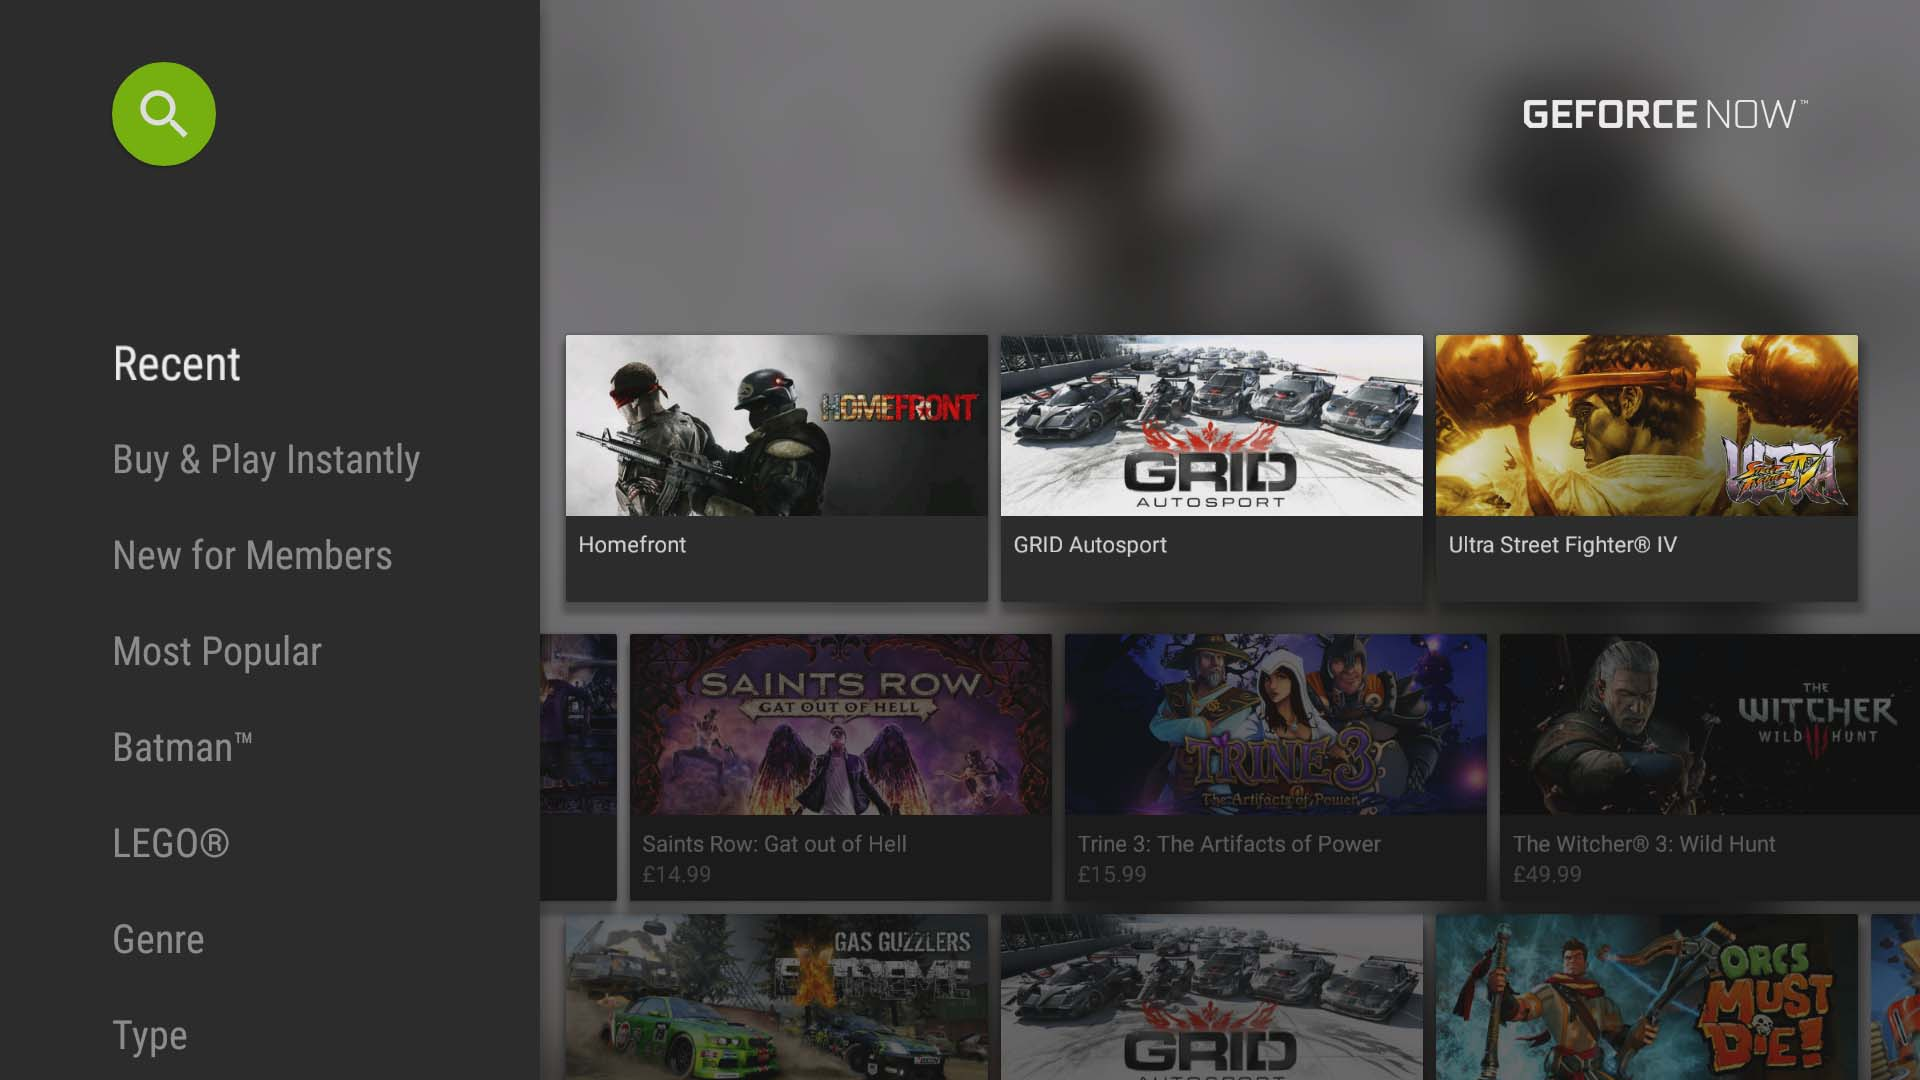 nvidia geforce now games